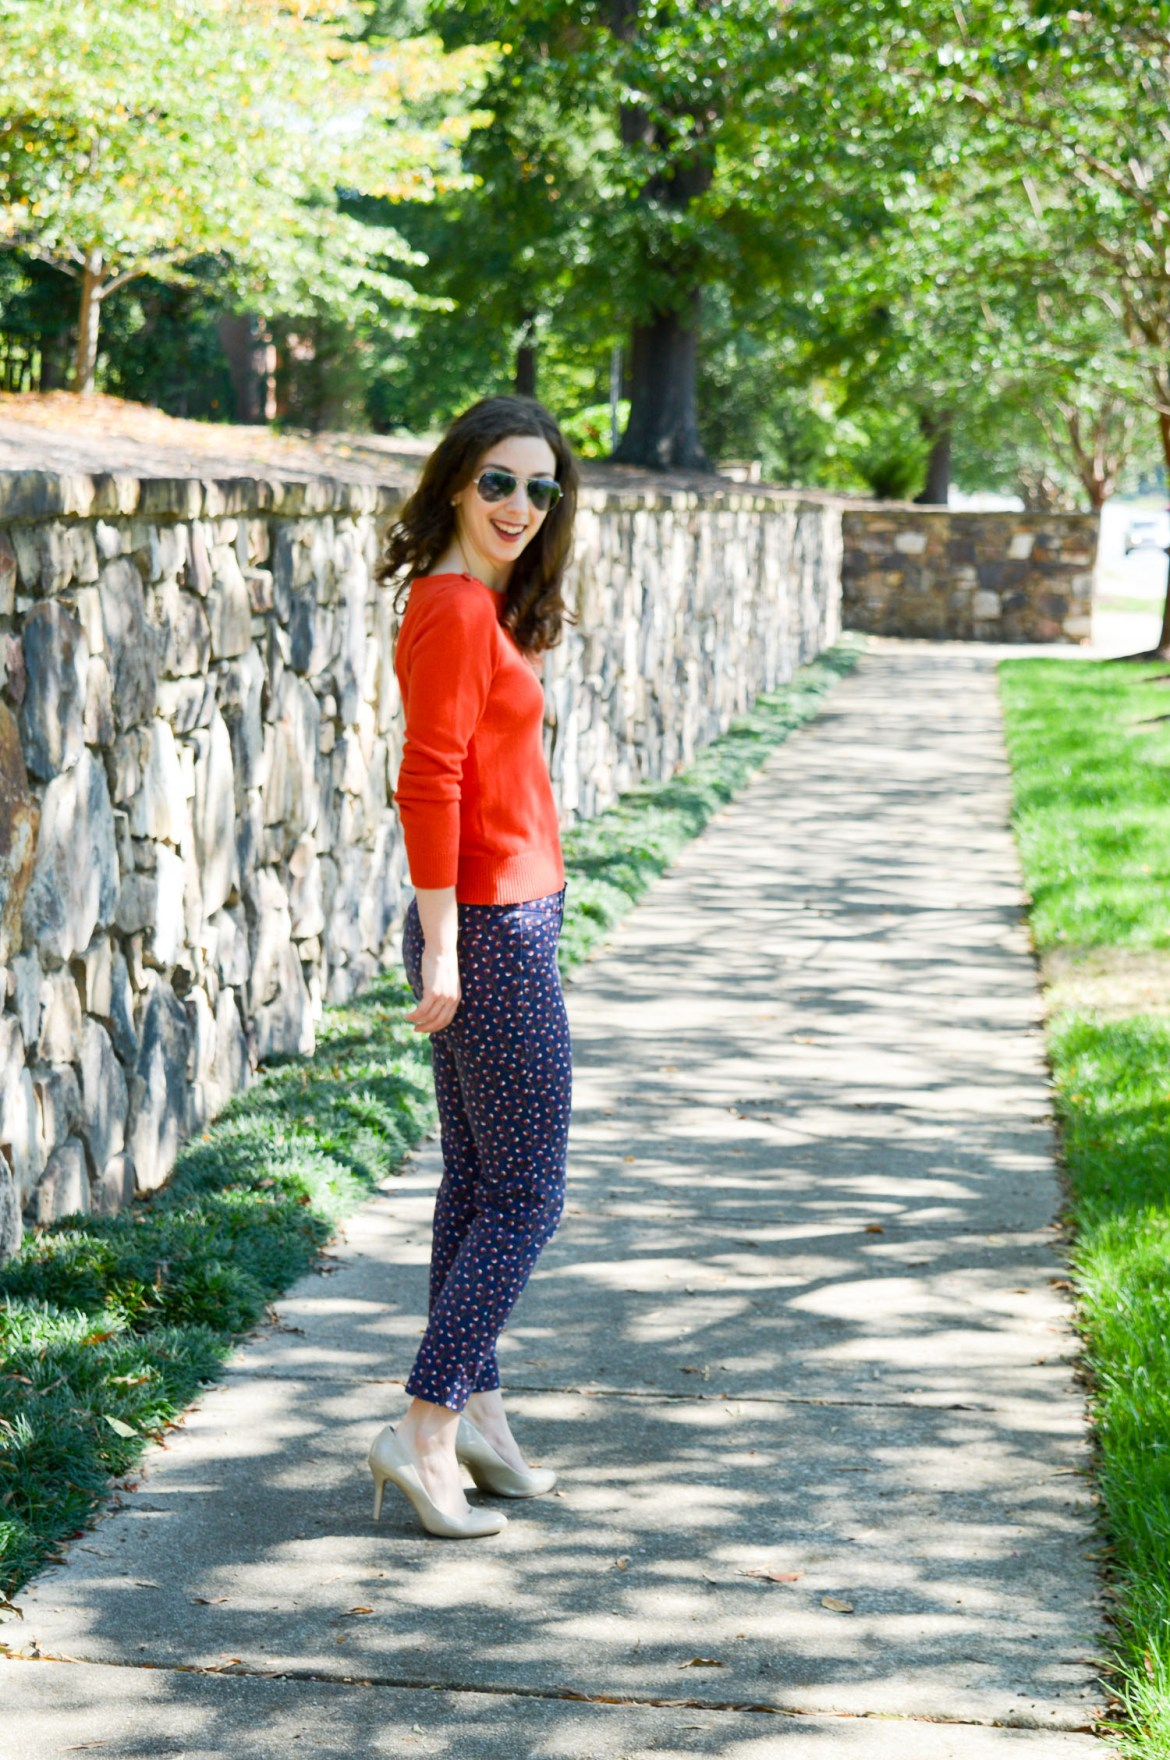 Ray Ban aviators with business casual